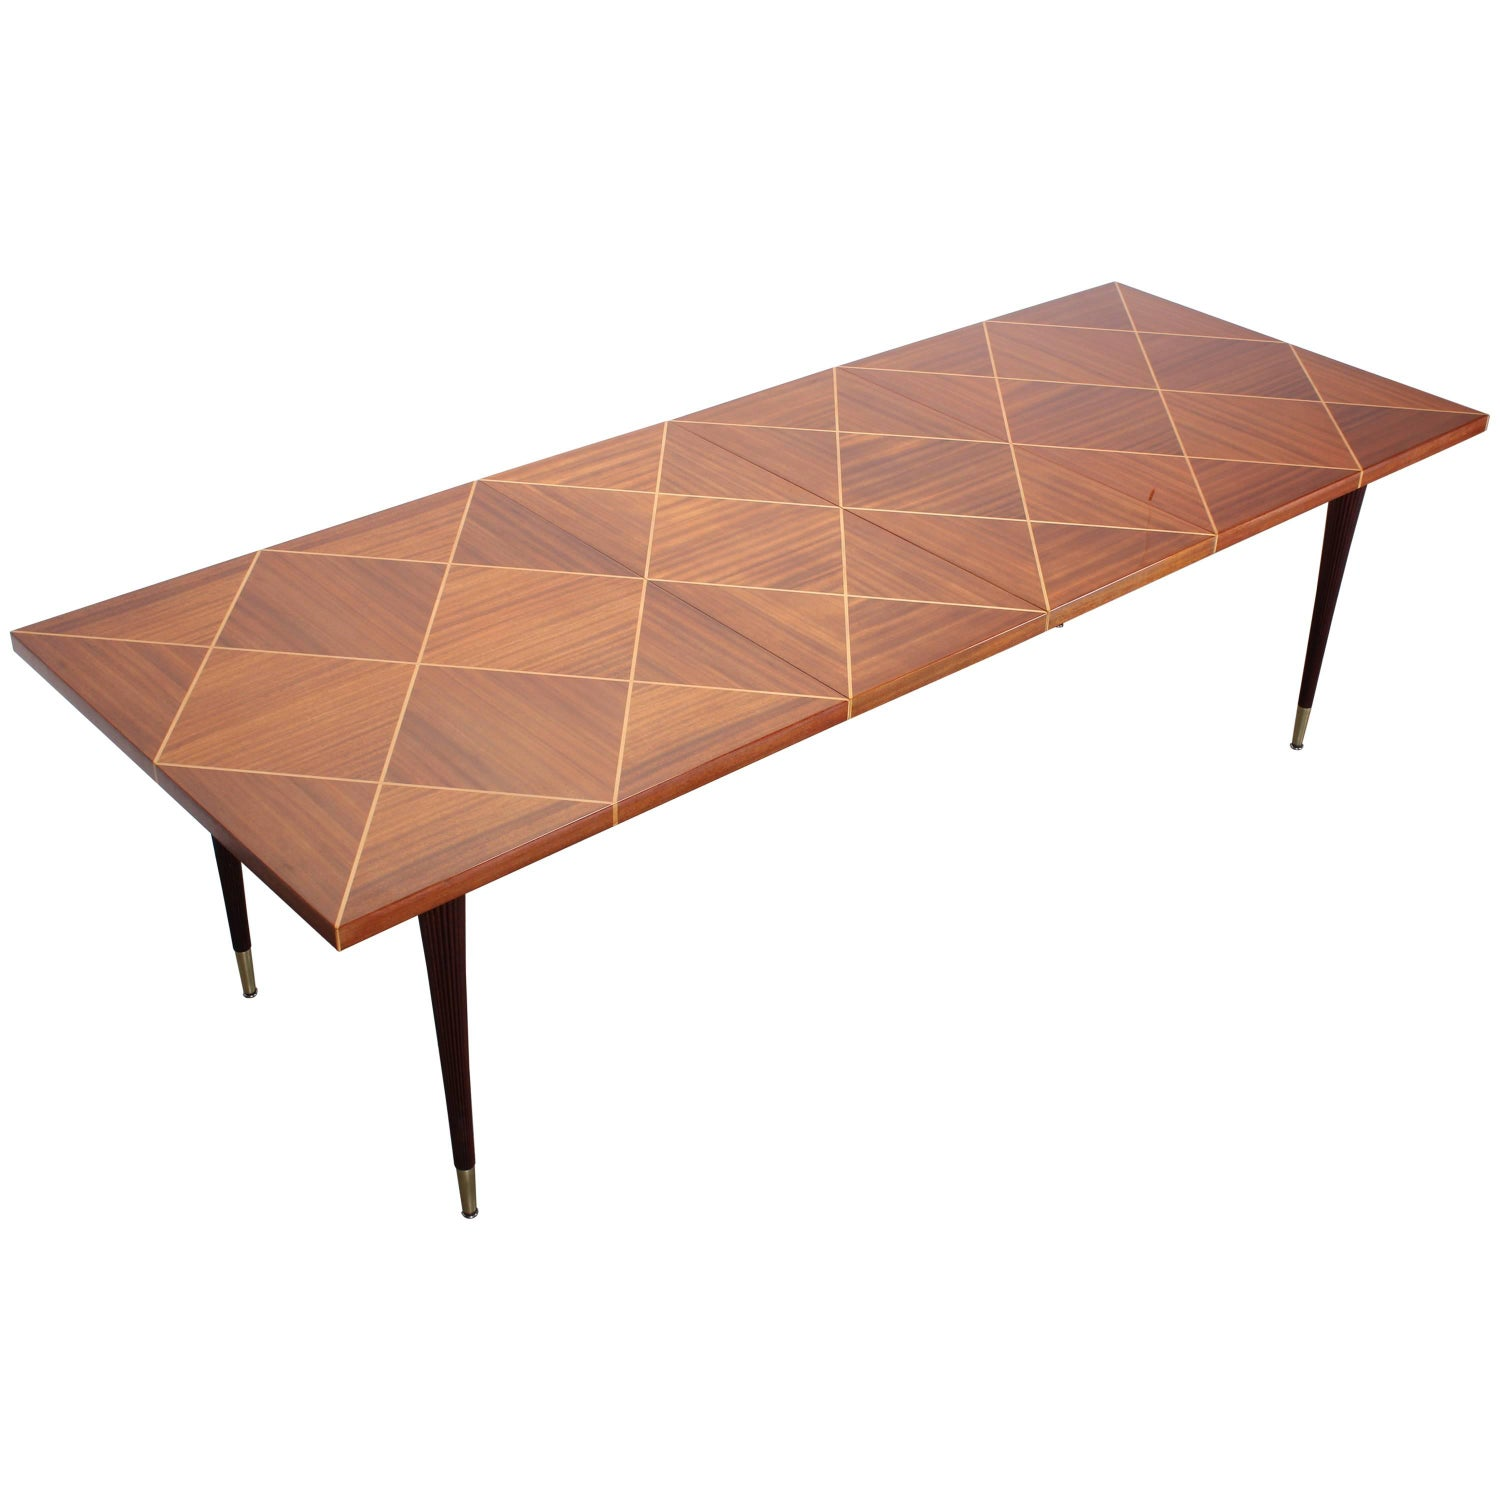 Tommi Parzinger Parquetry Dining Table by Charak 1950s For Sale